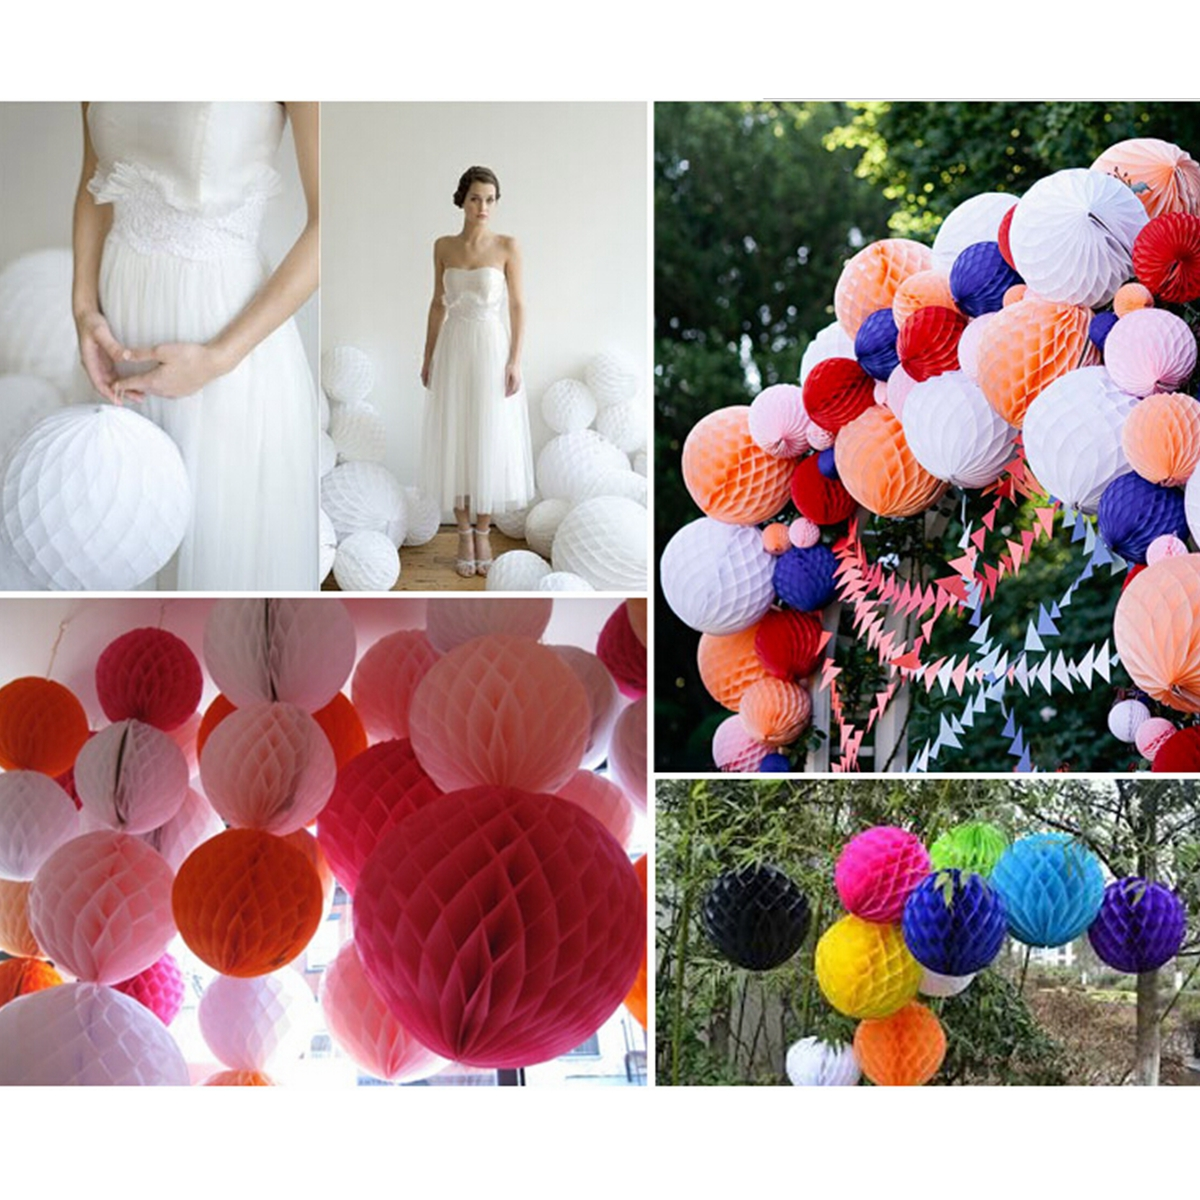 25CM 10'' Tissue Paper Pom Poms Honeycomb Ball Lantern Wedding Party Home Table Decor